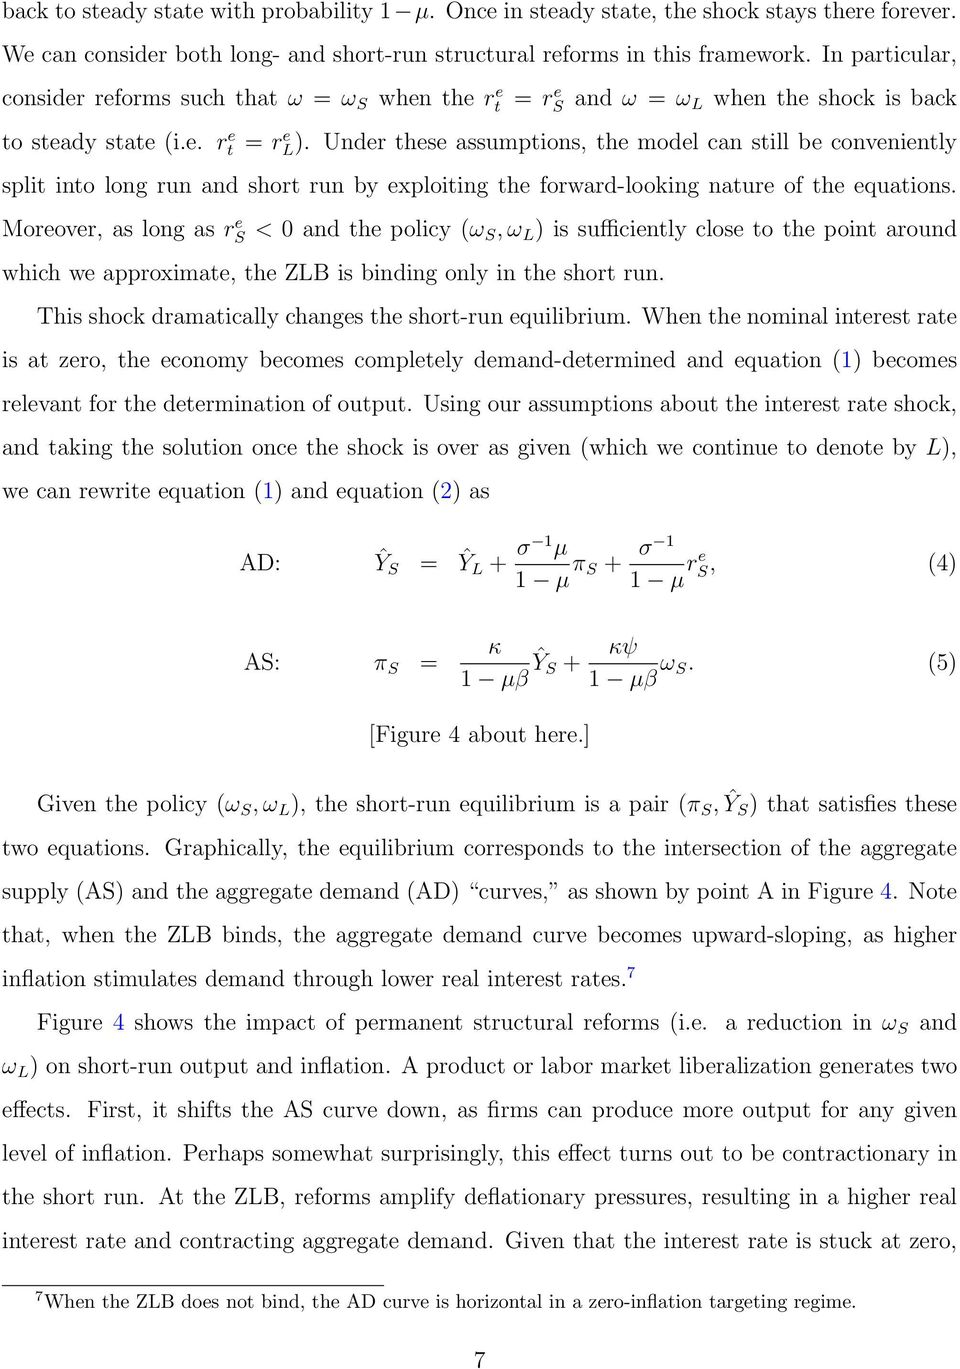 Under these assumptions, the model can still be conveniently split into long run and short run by exploiting the forward-looking nature of the equations.